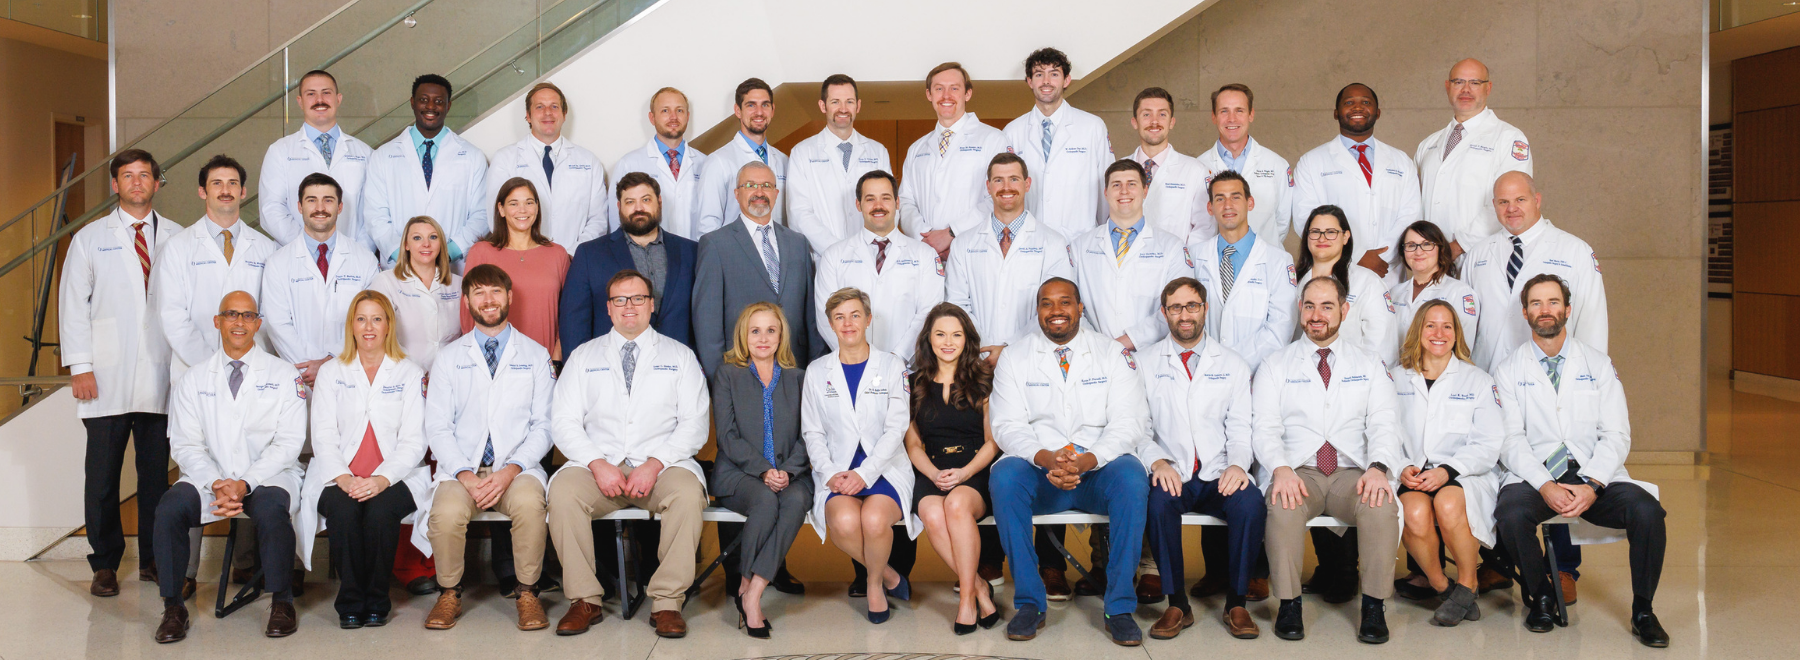 Orthopaedic Surgery and Rehabilitation Faculty and Staff